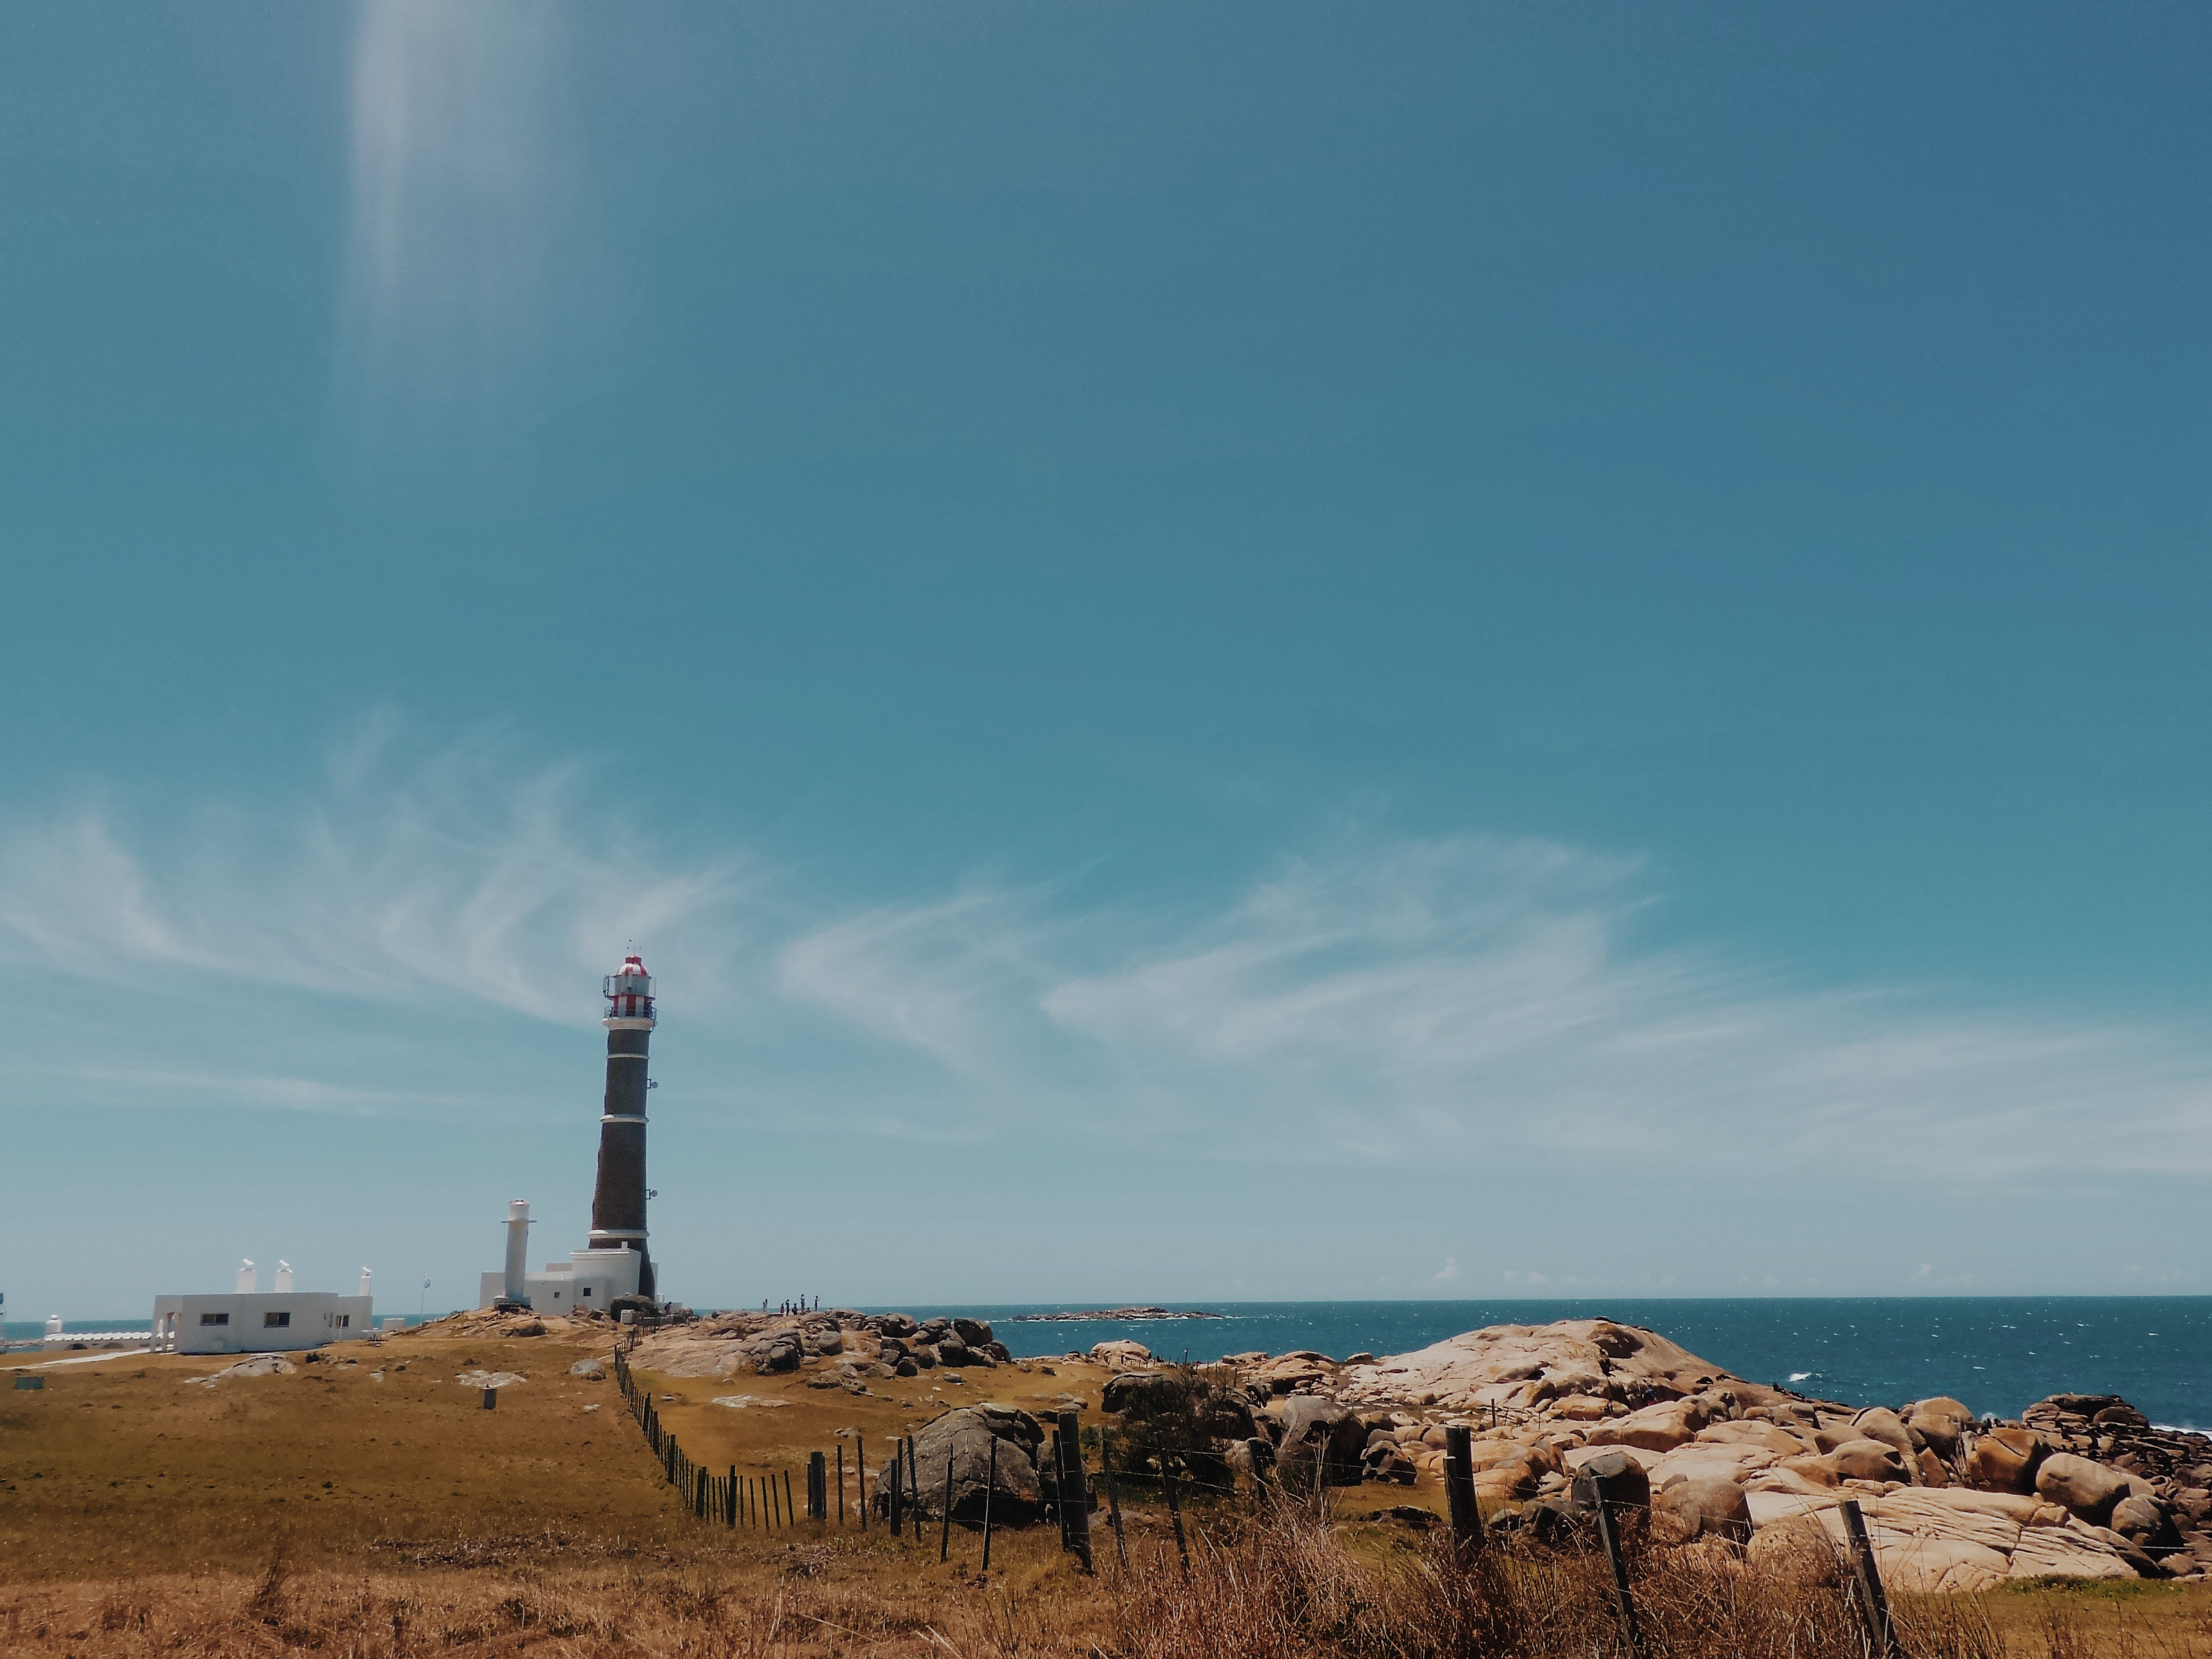 brown and white lighthouse during daytime